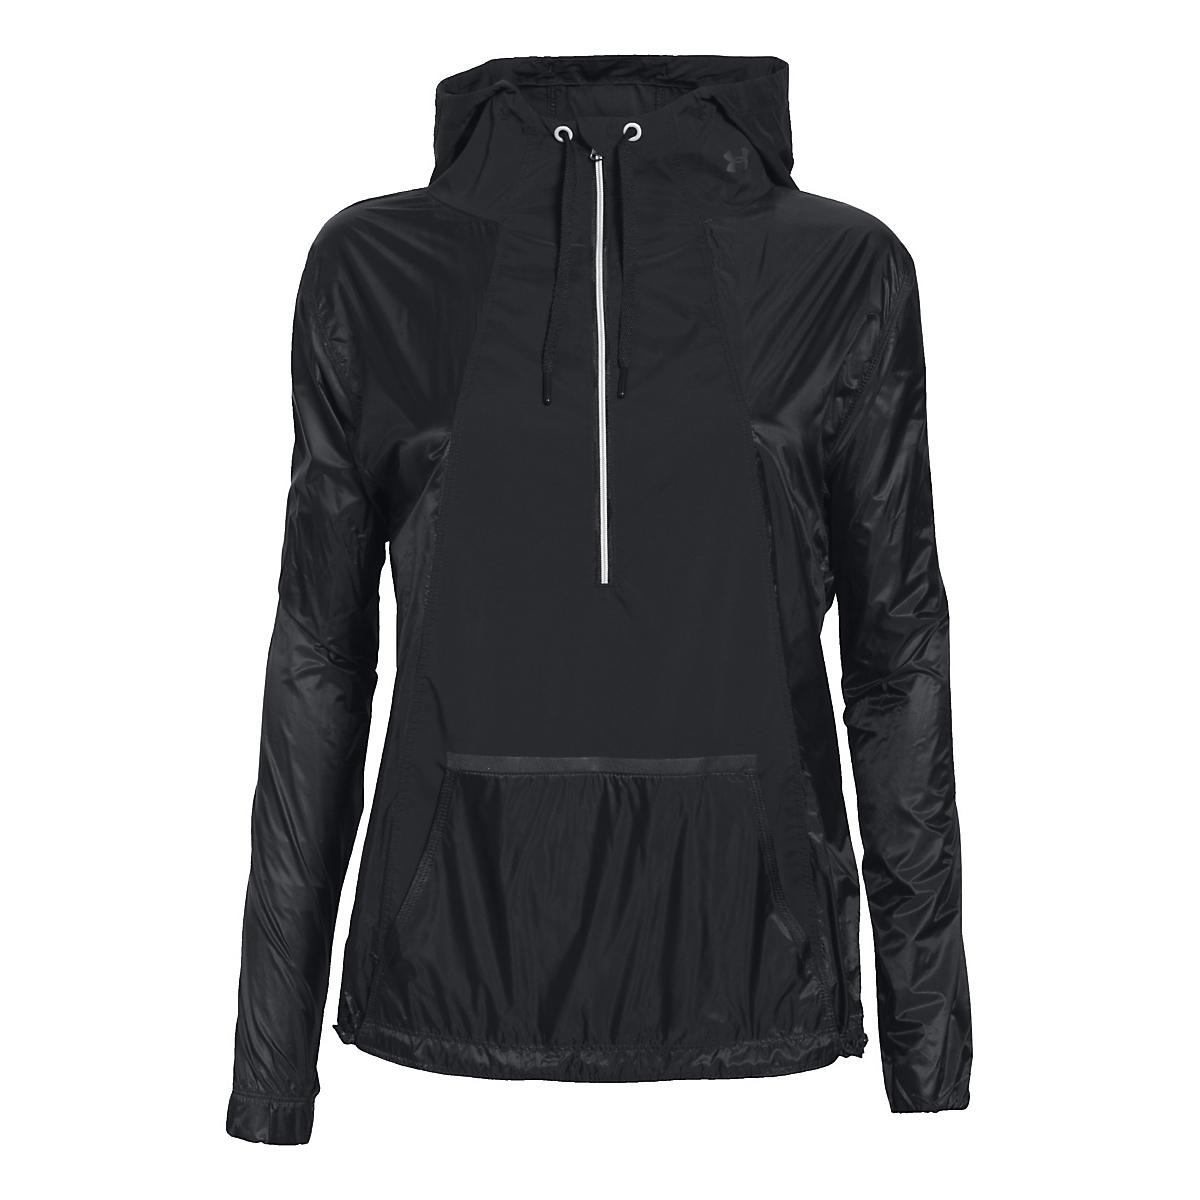 Women's Under Armour�Roga Jacket